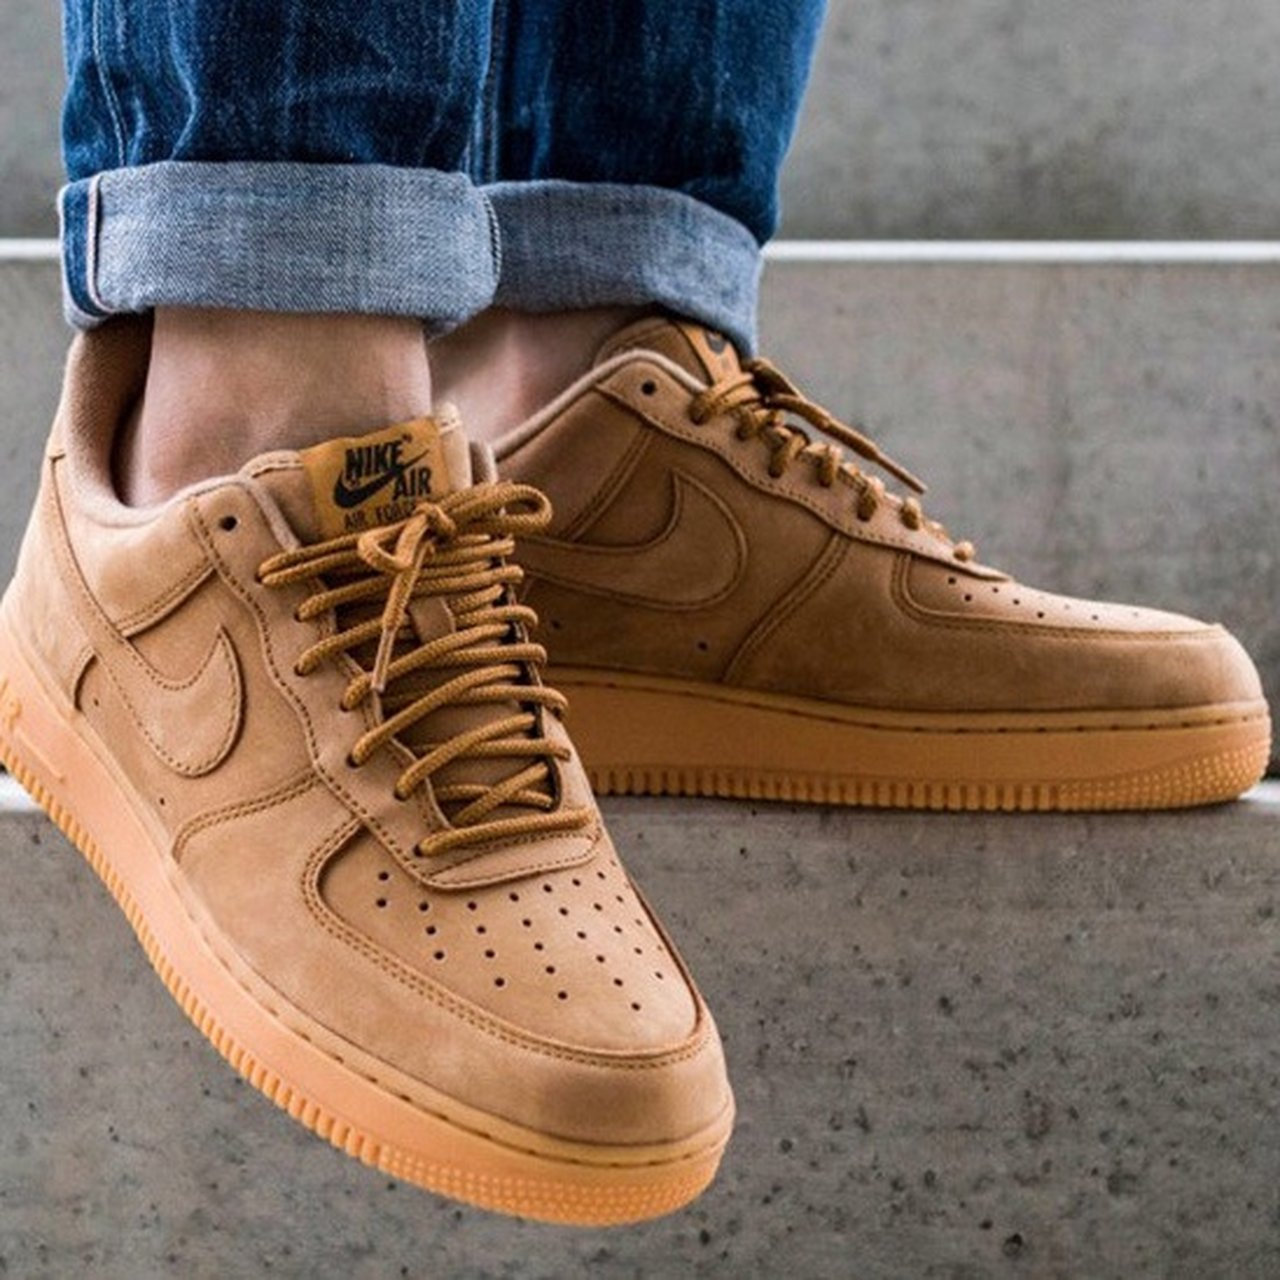 """hot sale online 64e3d e4c0a The Nike Air Force 1 Low """"Flax"""" Sz 9.5 Nike s Air Force 1 to - Depop"""